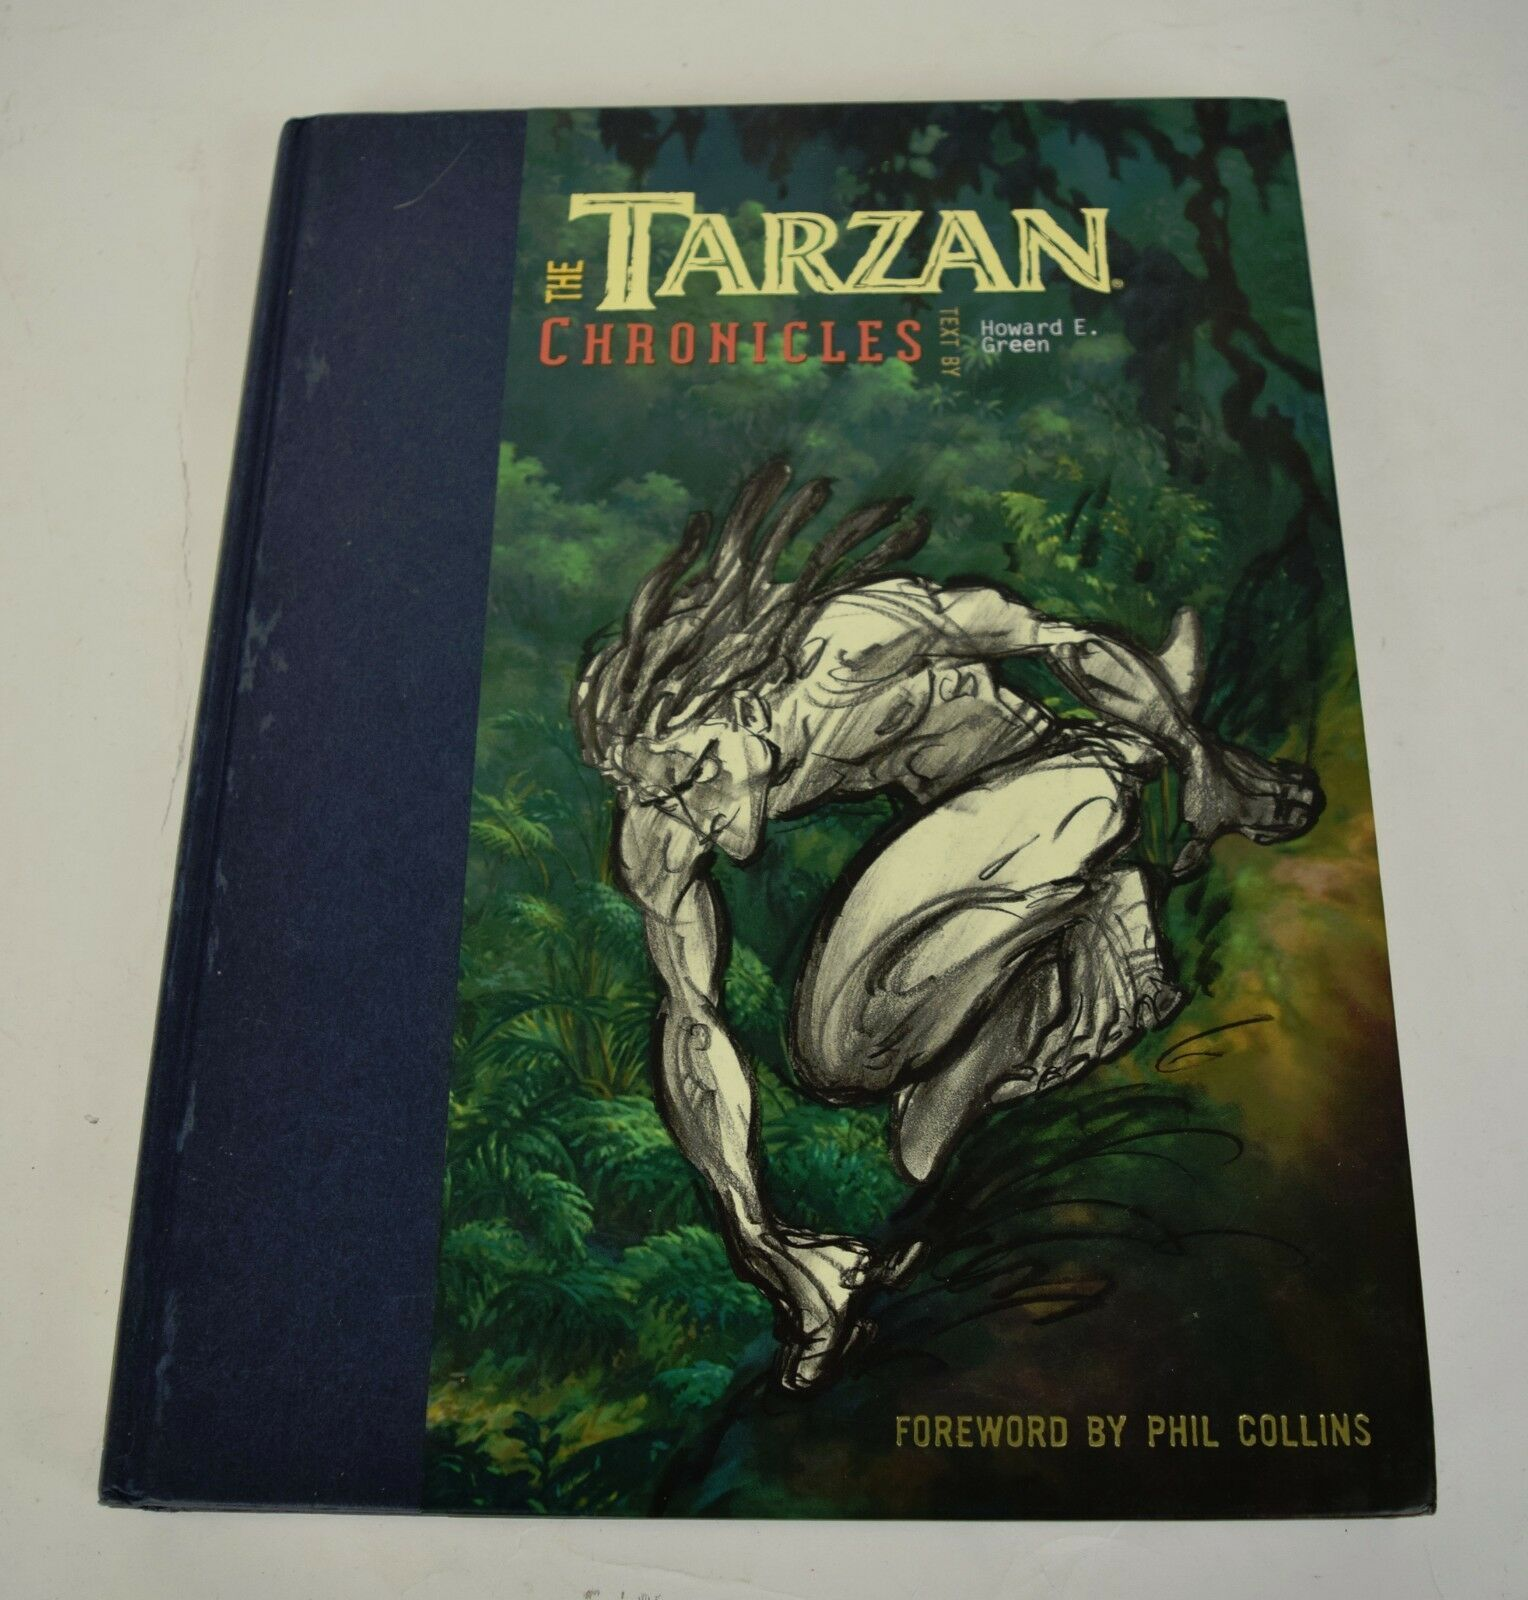 The Tarzan Chronicles HC Signed Howard E Green Walt Disney Animation Movie